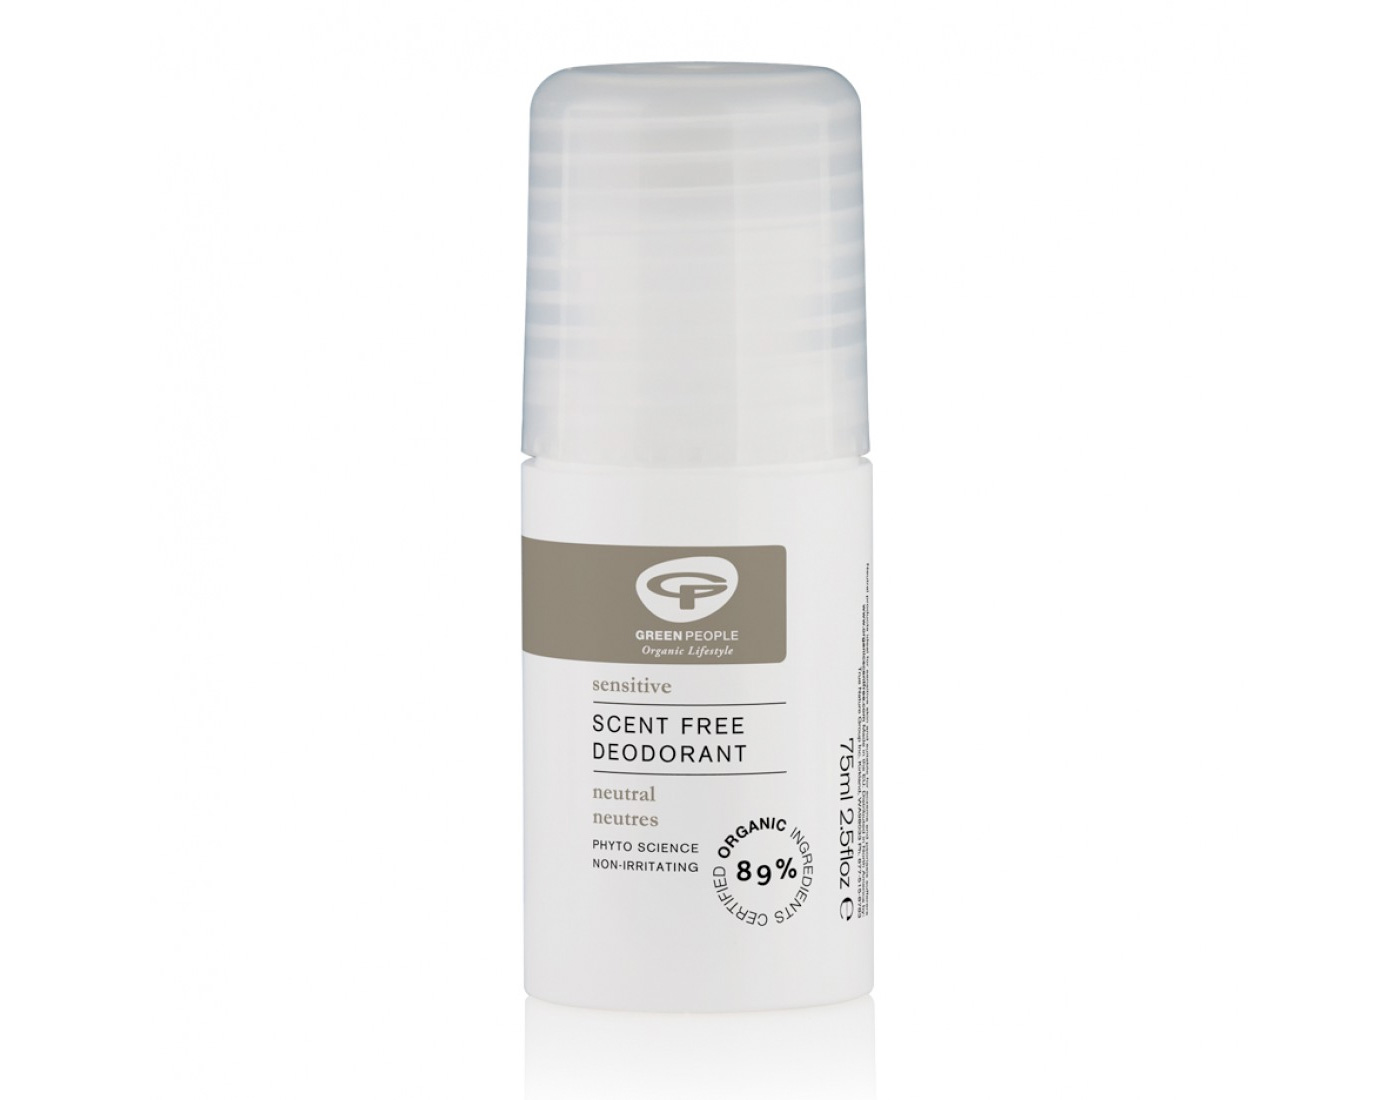 Green People Scent free deodorant Sensitive